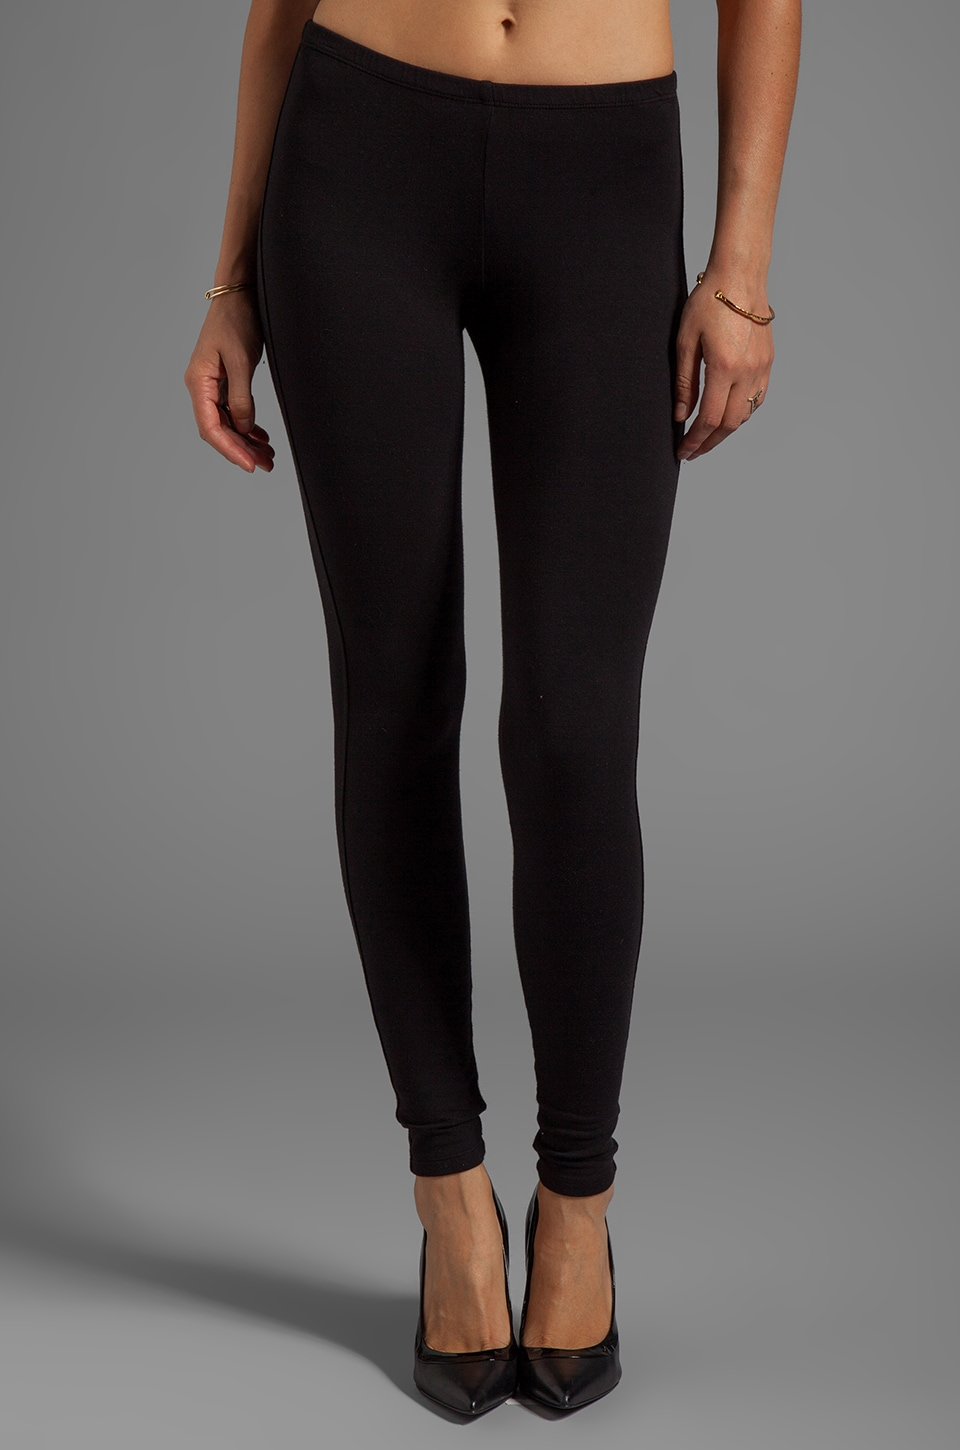 Splendid French Terry Legging in Black